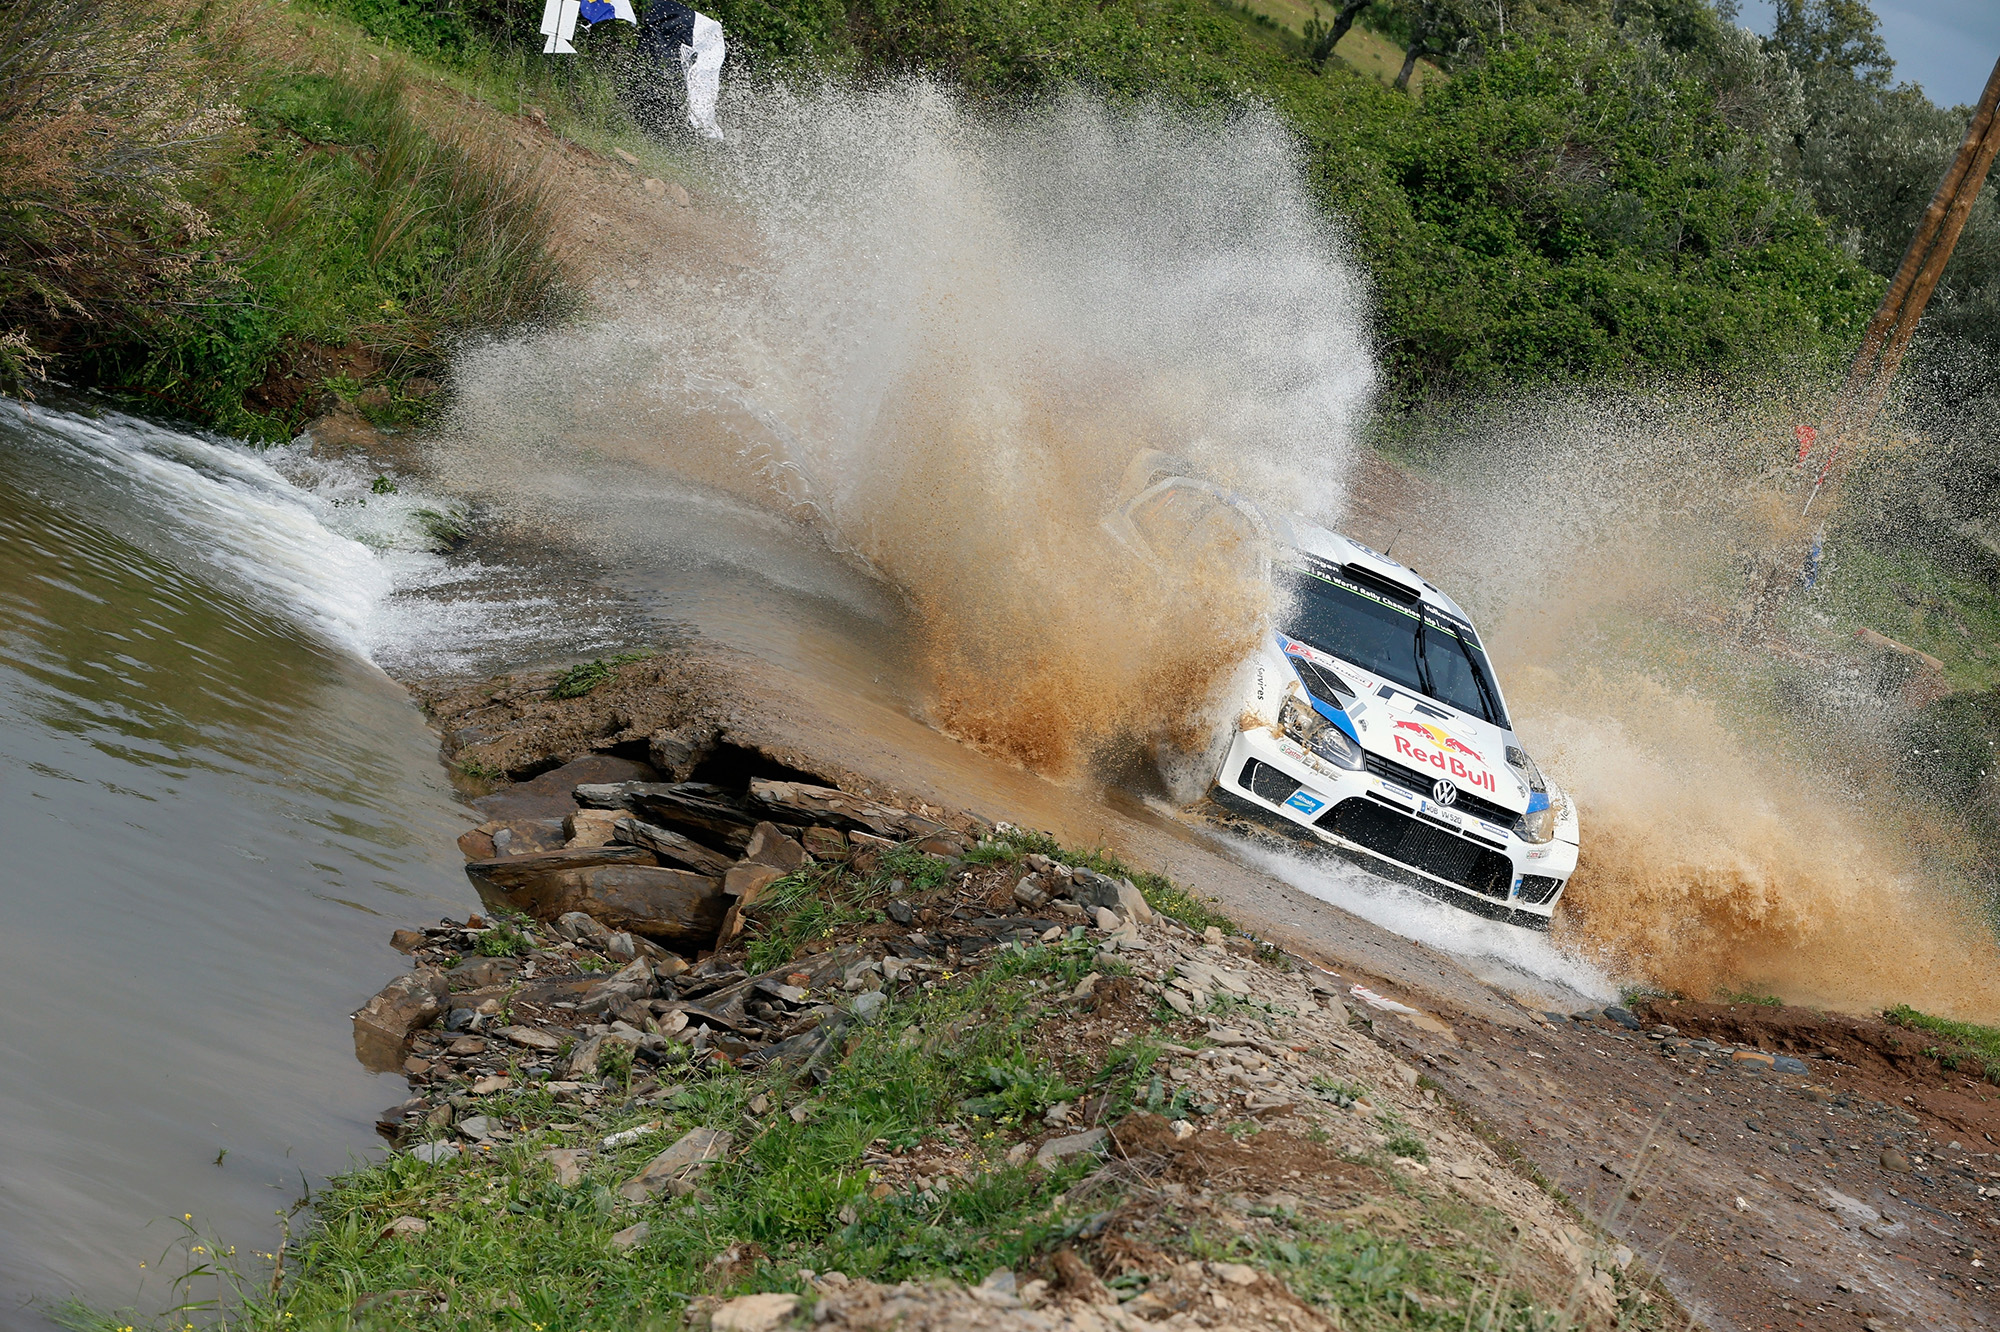 VW WRC 2014 04 RB POLO Portugal 600x300